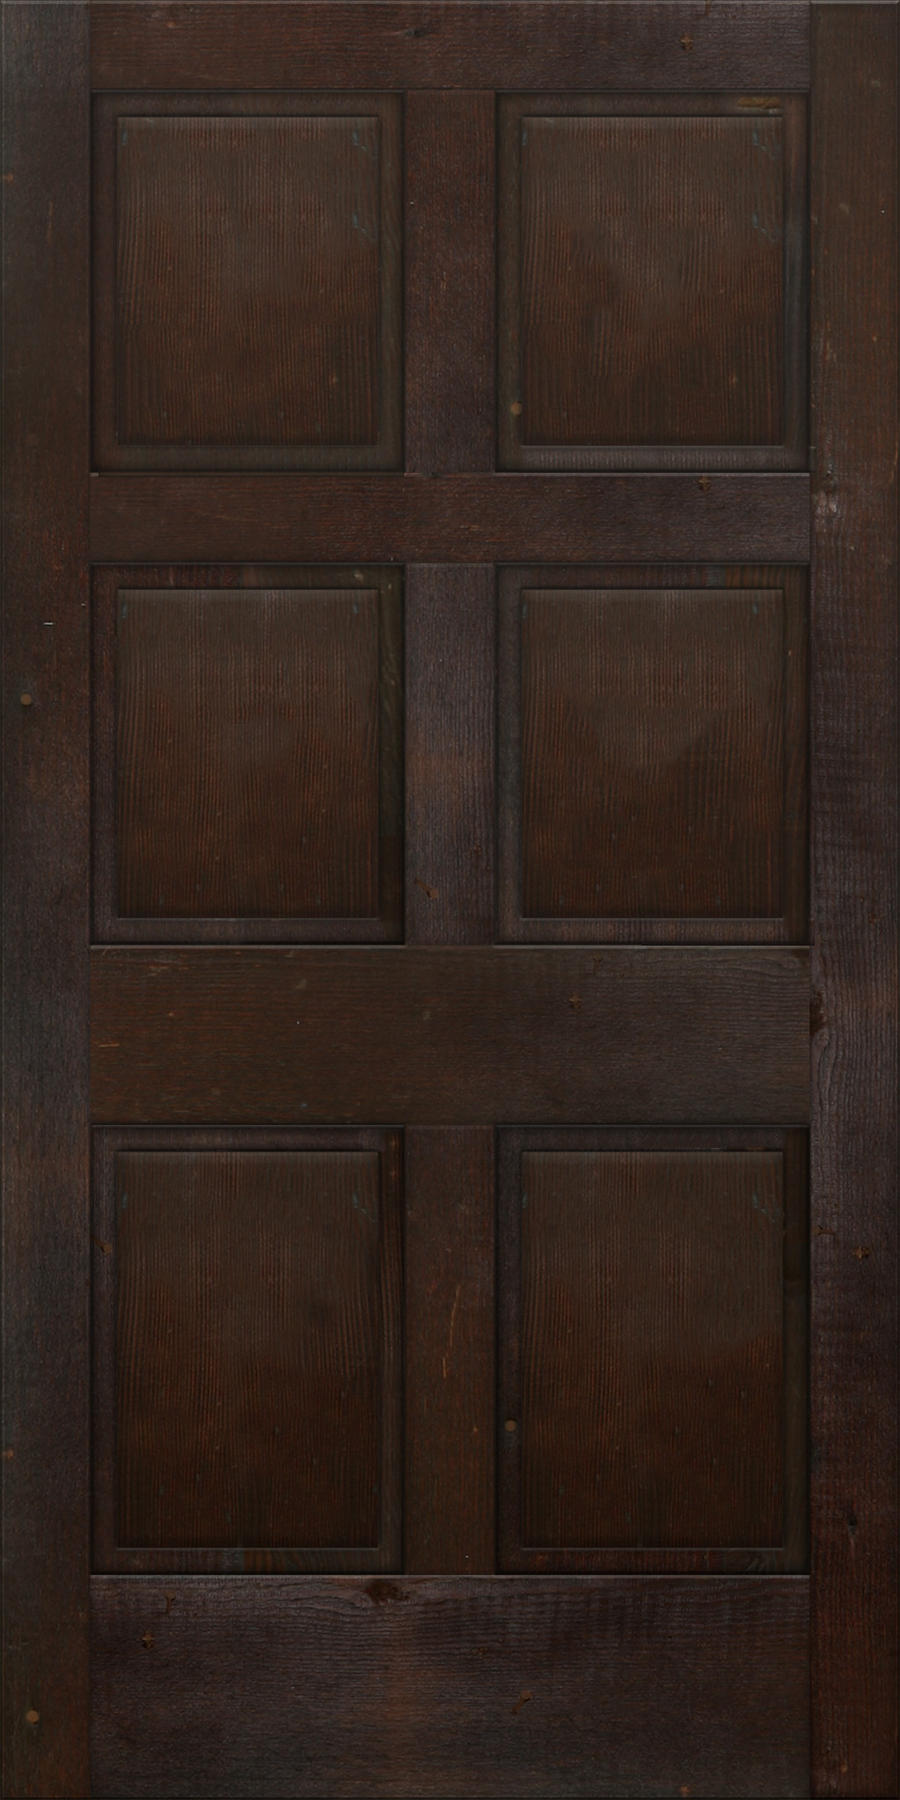 White wood texture related keywords amp suggestions white wood texture - White Wood Door Texture Wood Door Texture